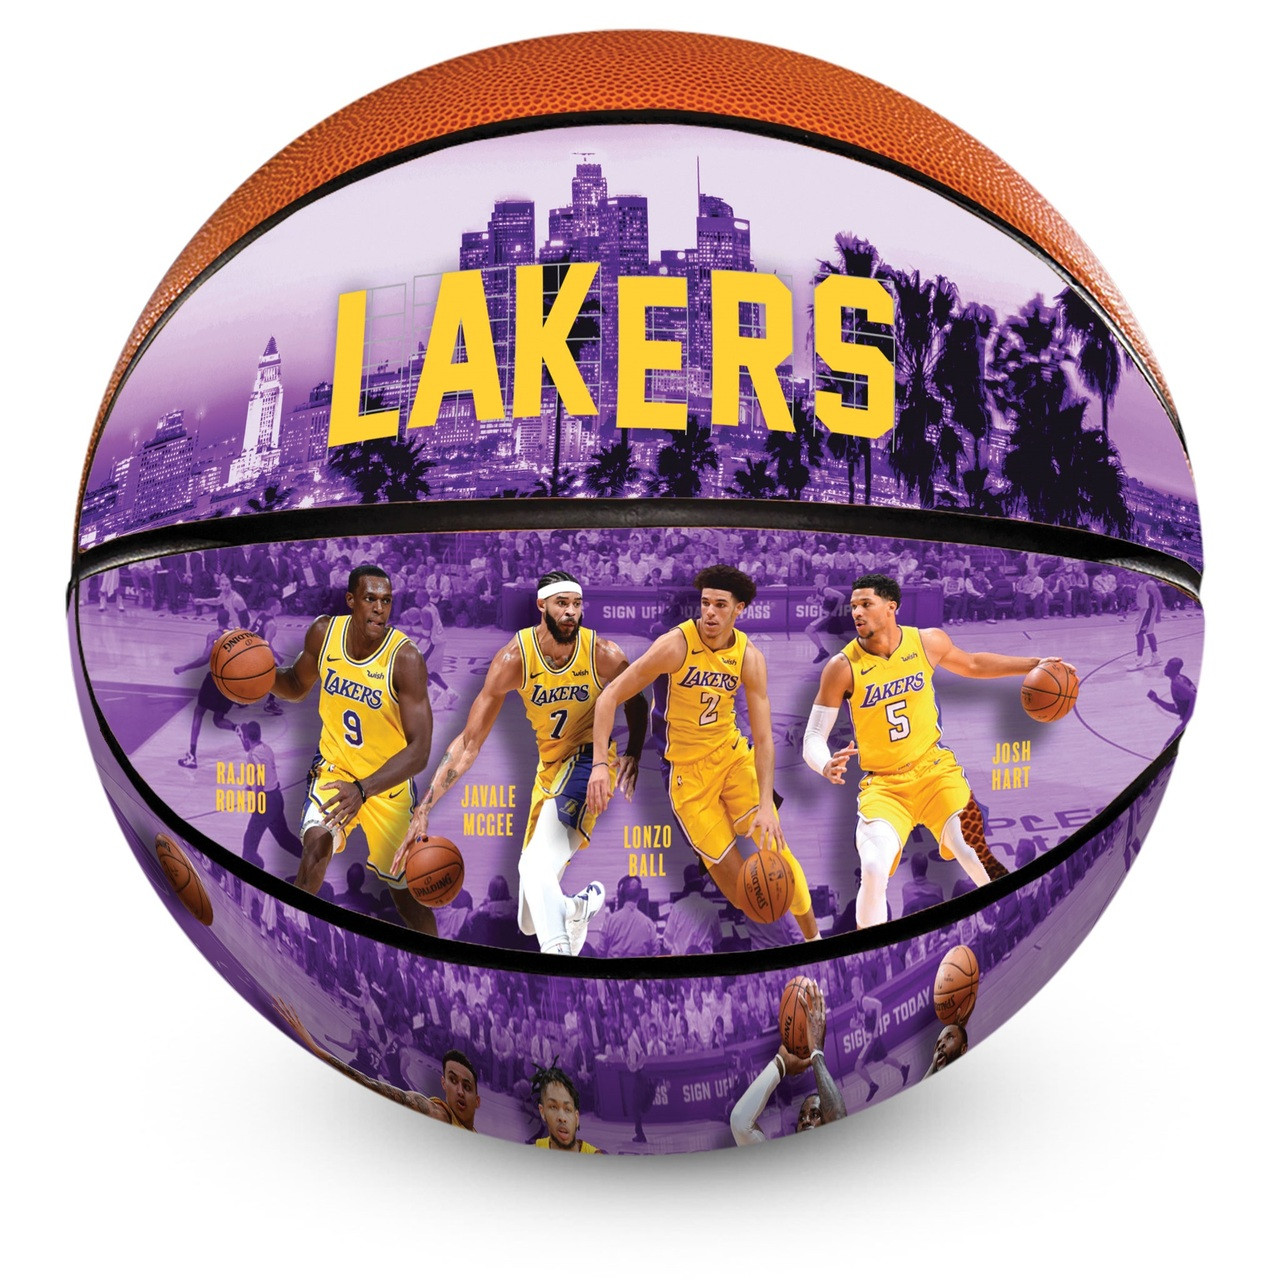 8788b3dc77e7c Los Angeles Lakers 2018/2019 Roster Officially Licensed Premium NBA  Basketball